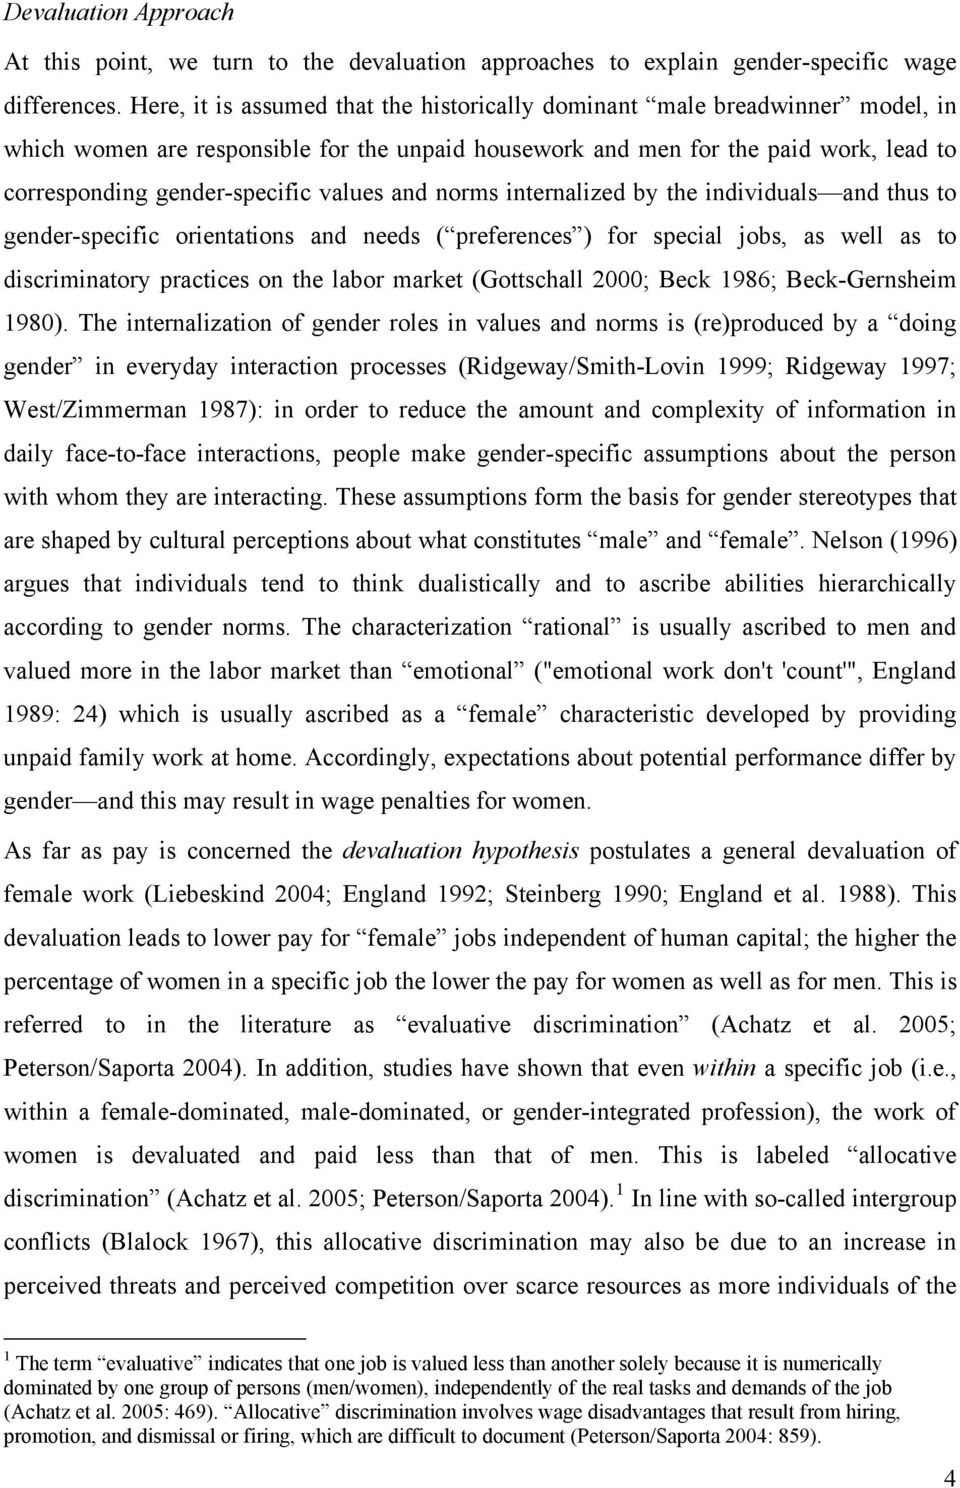 values and norms internalized by the individuals and thus to gender-specific orientations and needs ( preferences ) for special jobs, as well as to discriminatory practices on the labor market